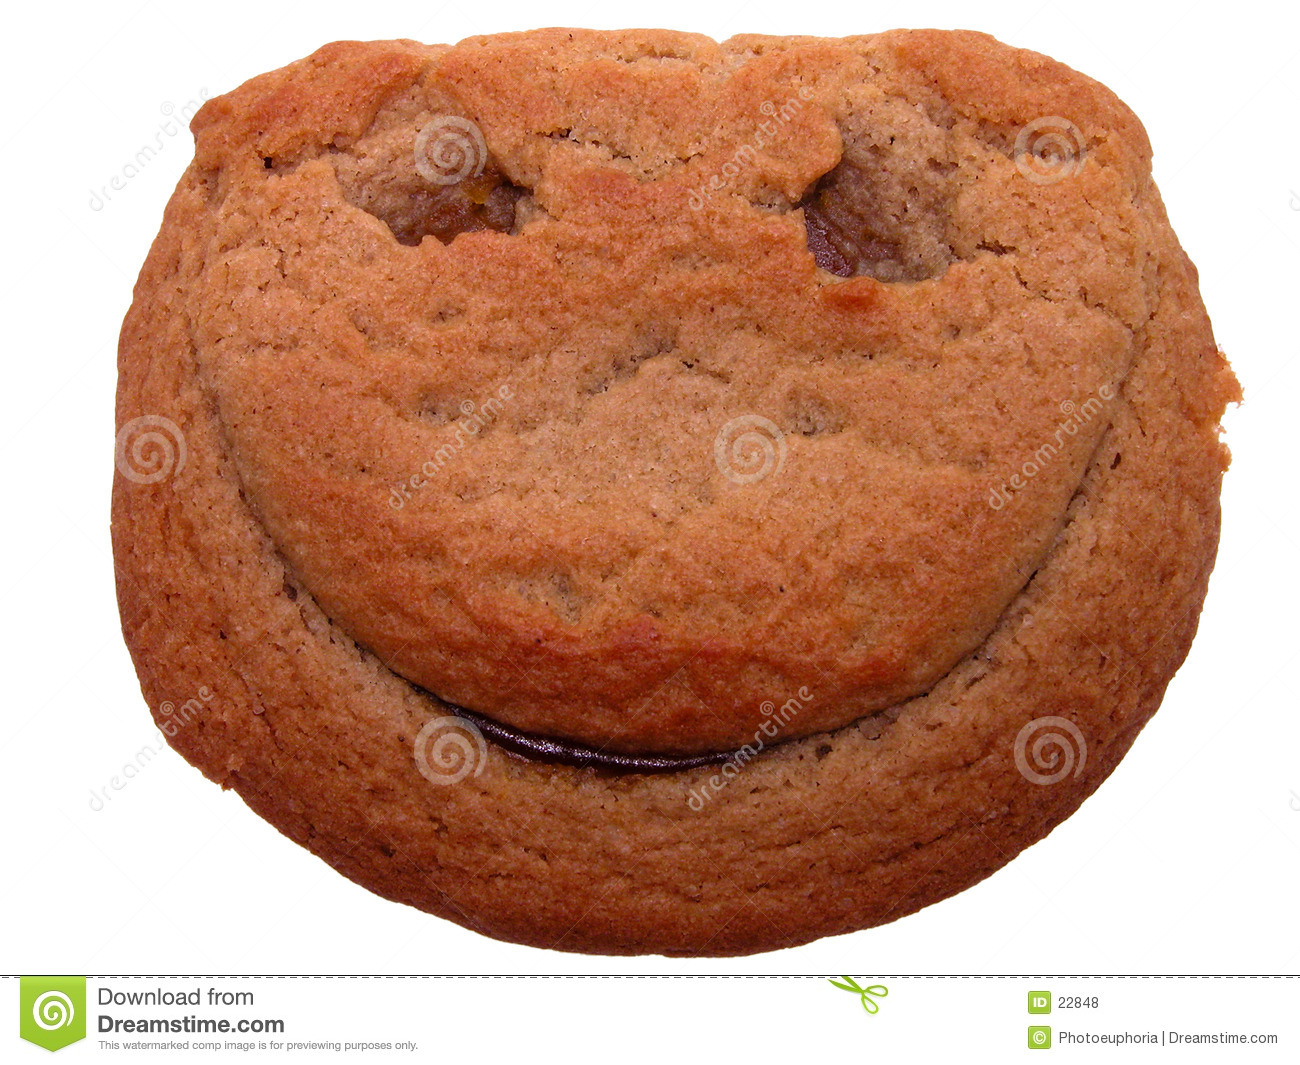 Food: Smiley Face Cookie